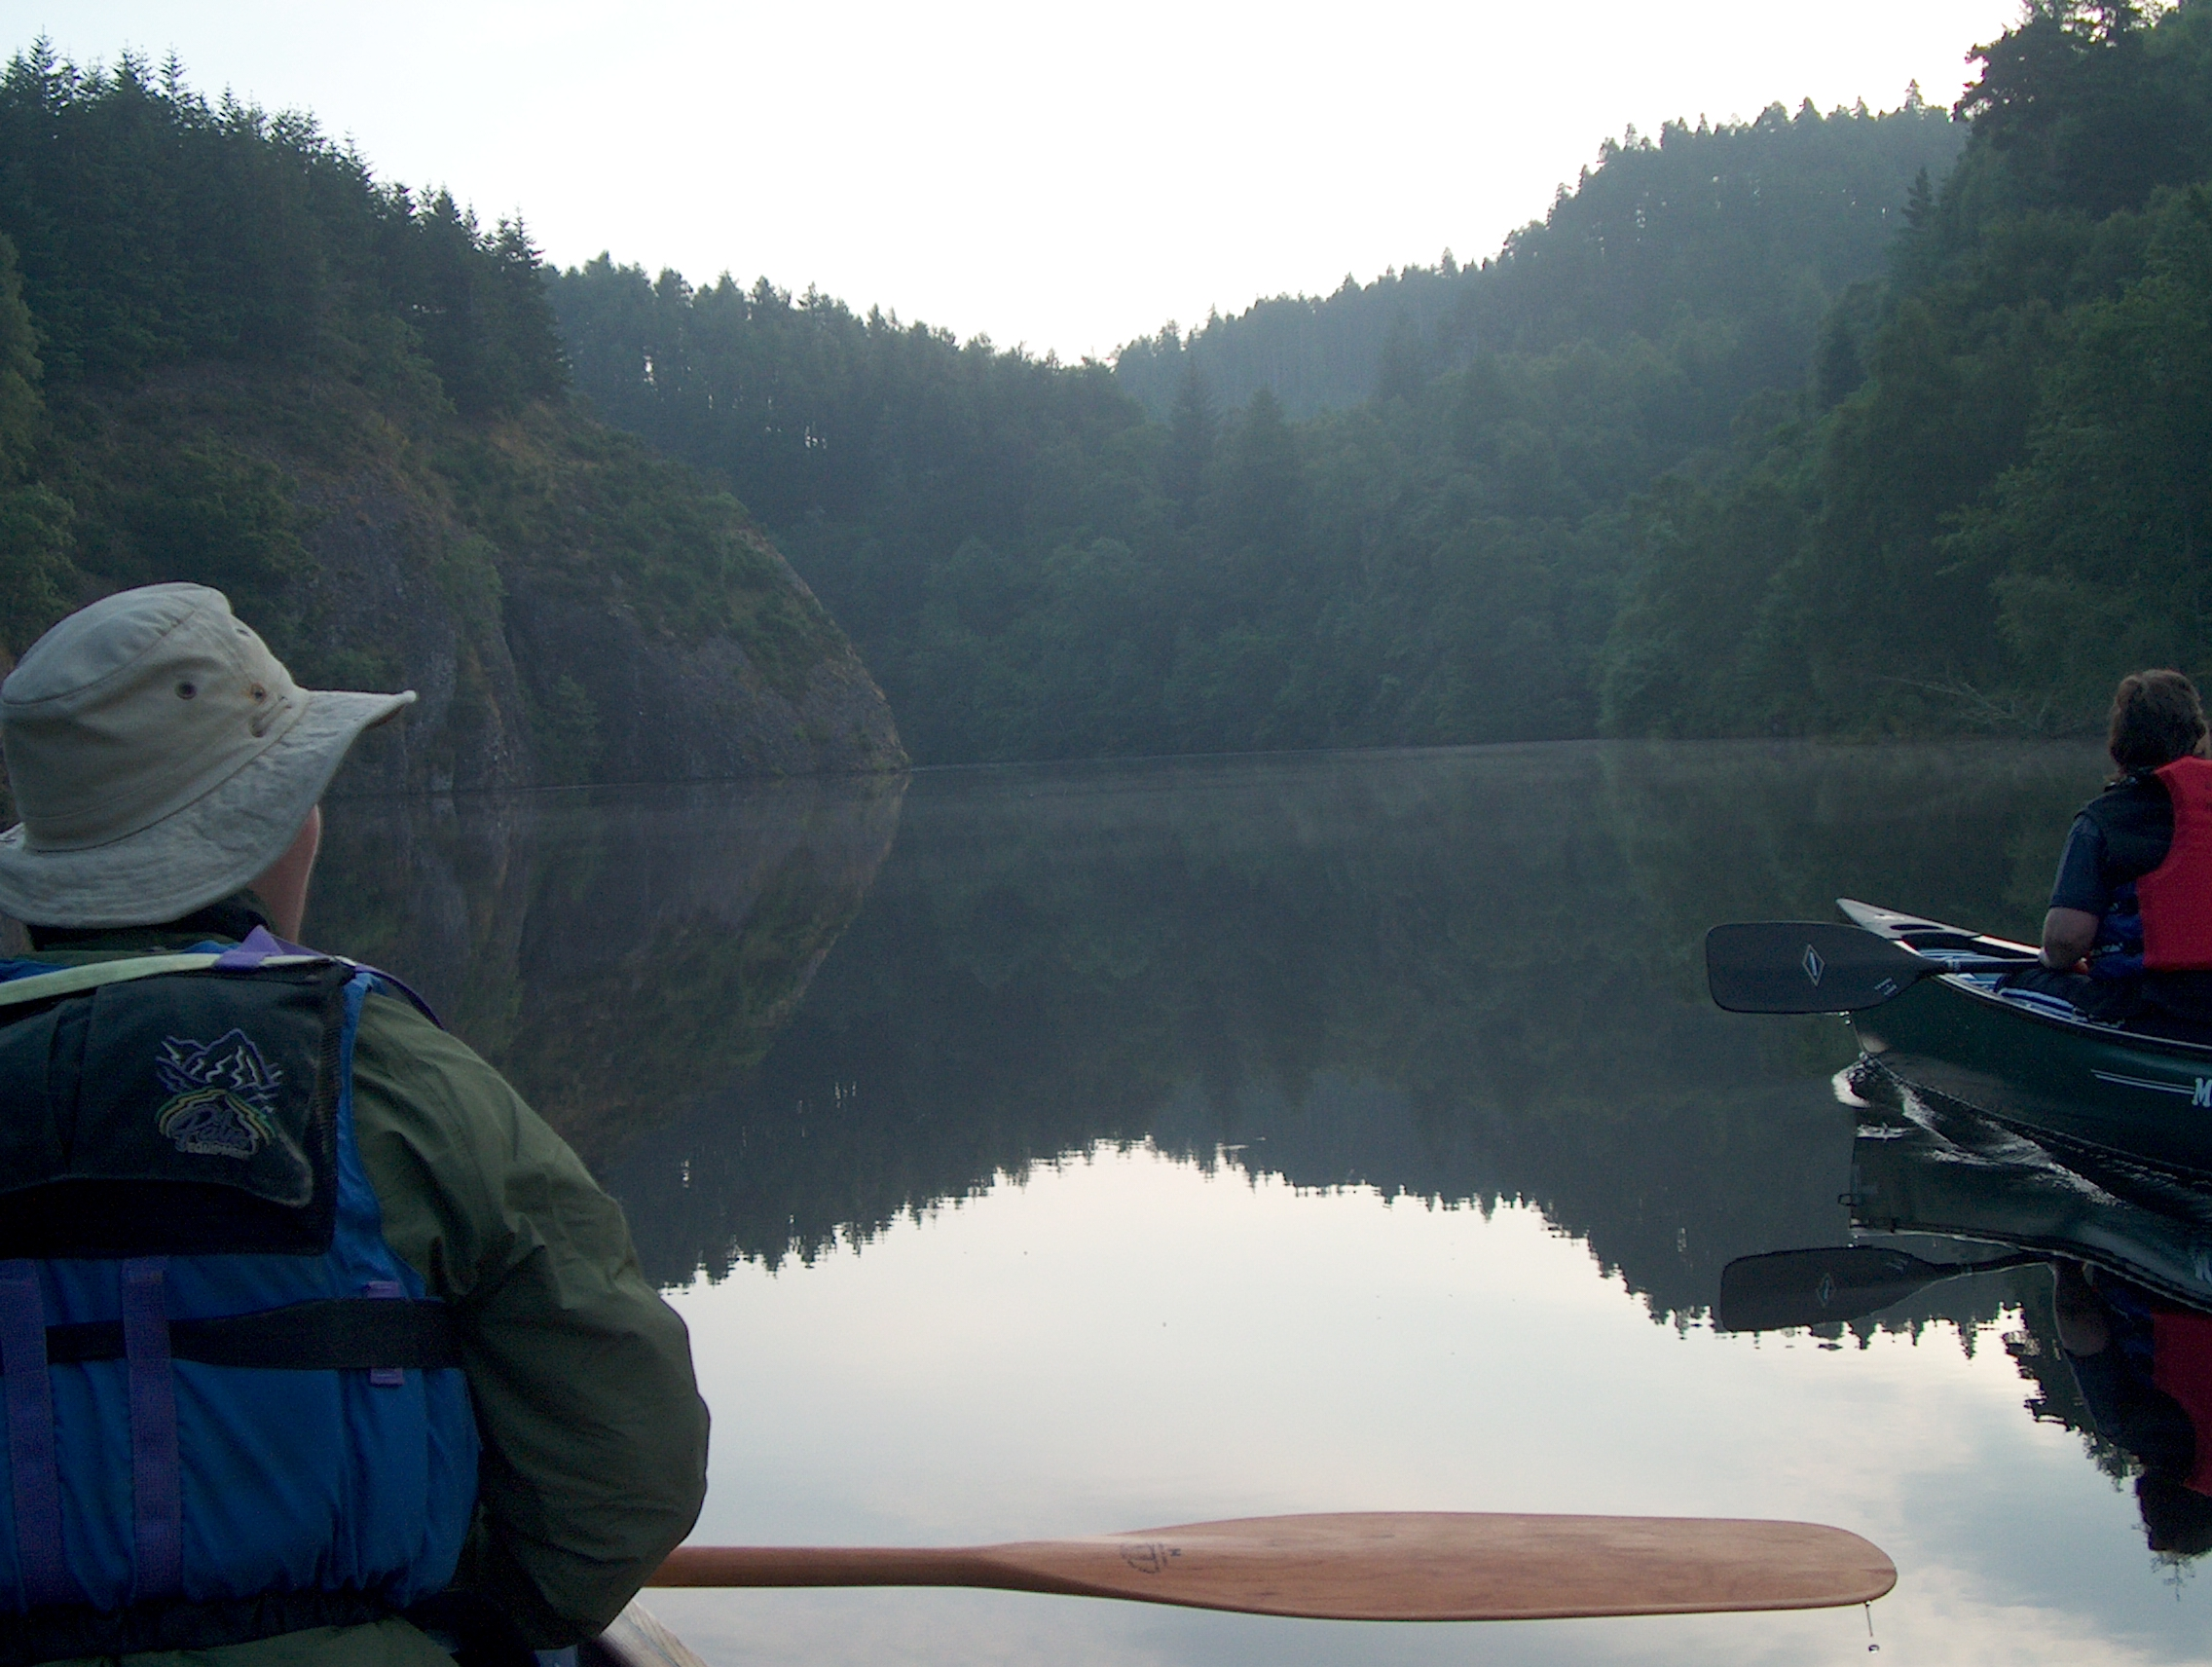 Canoe Beauly Reflection.jpg